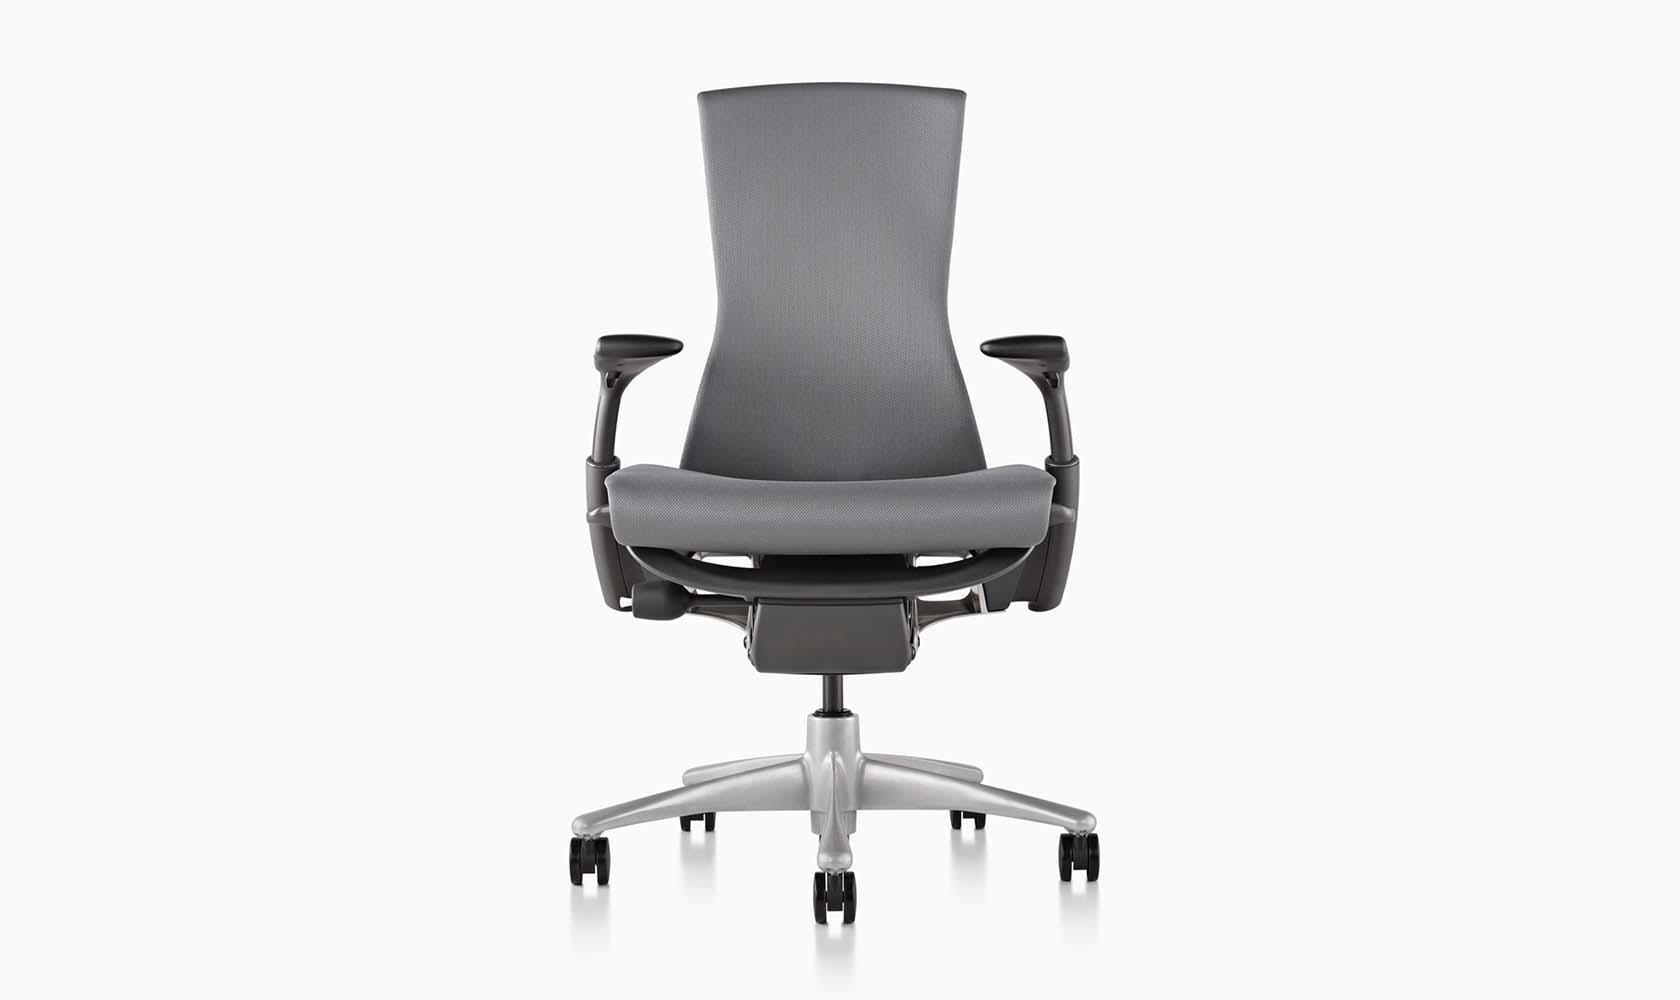 Herman Miller Embody Chair. Industrial design meets mobile design